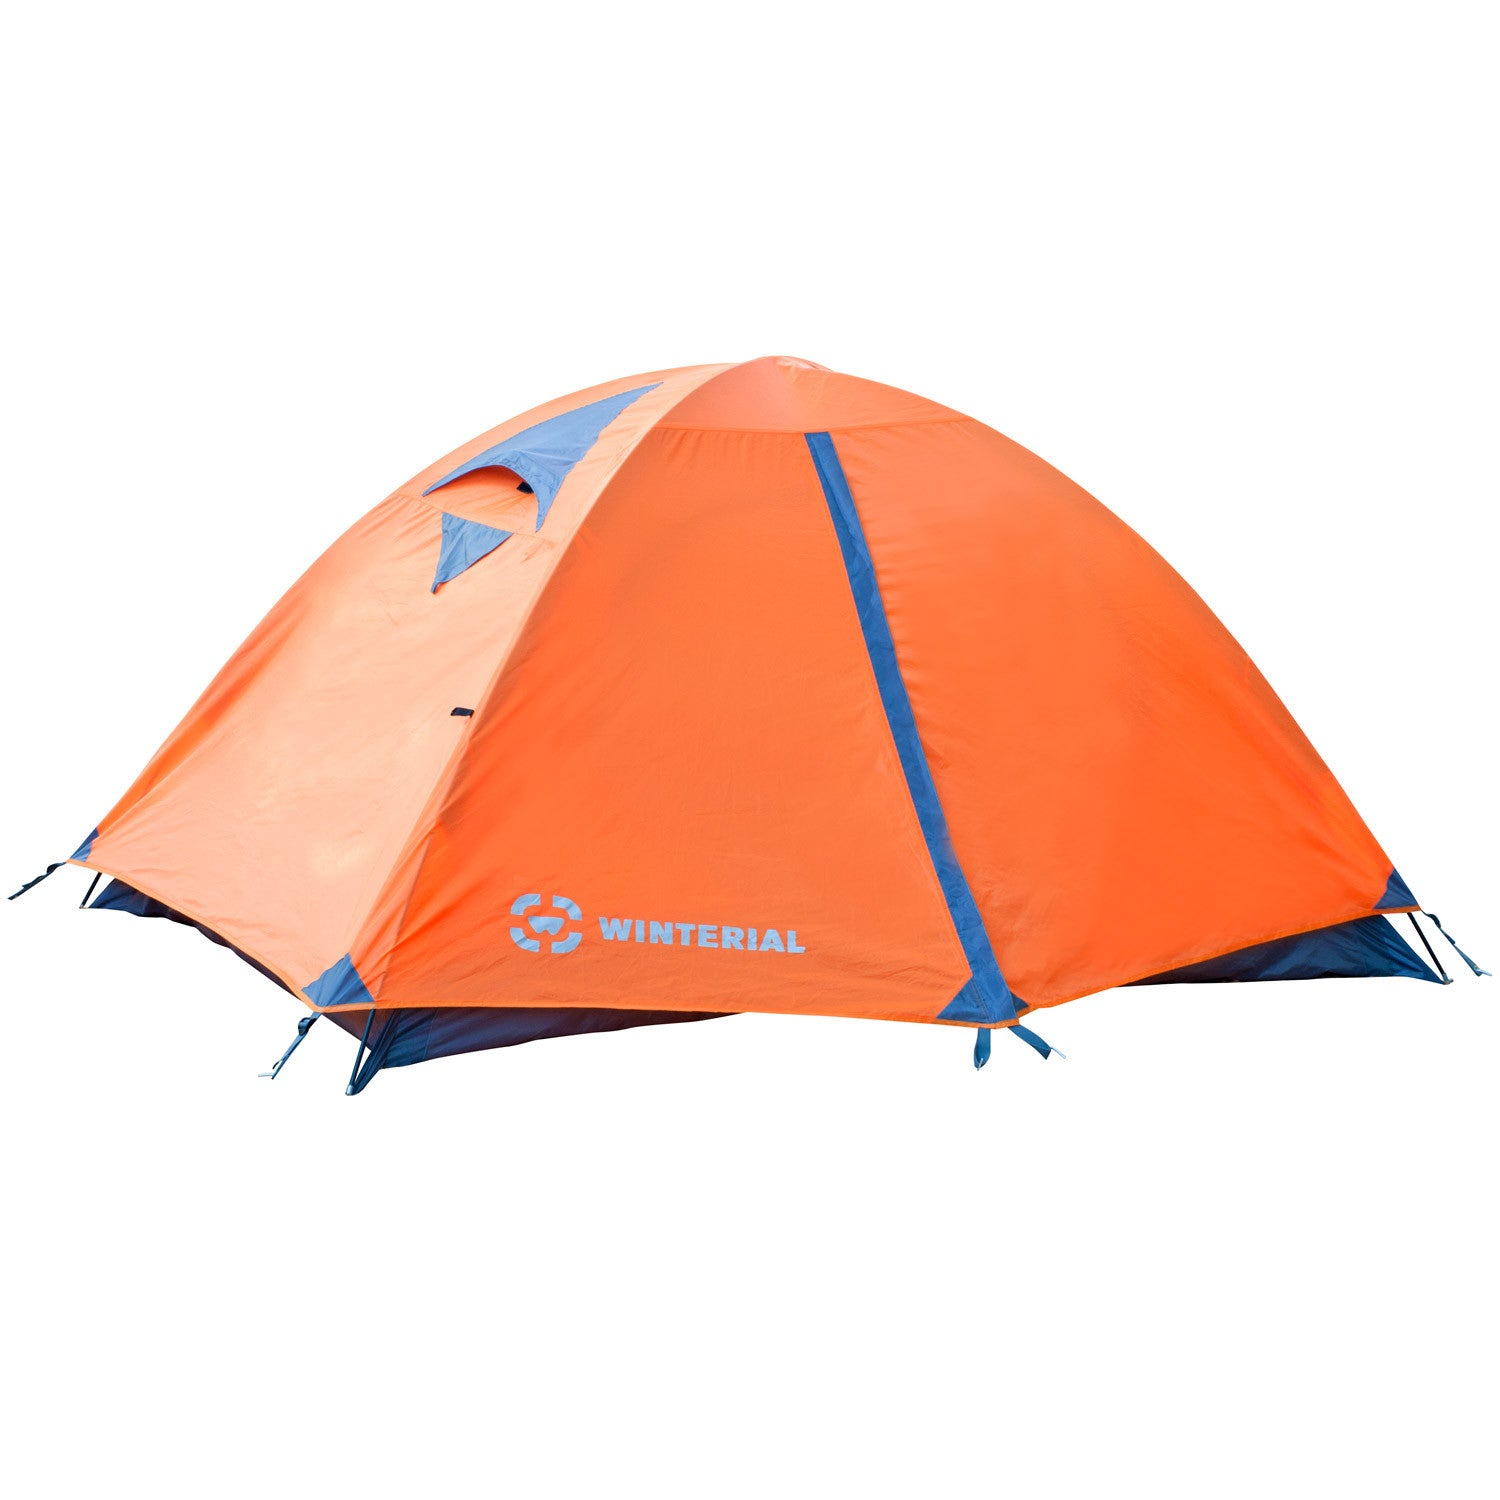 ... 2 person c&ing tent for backpacking hiking or c&ing. ...  sc 1 st  Winterial.com & Easy Setup Two-Person Camping Tent with Carry Bag - Winterial.com